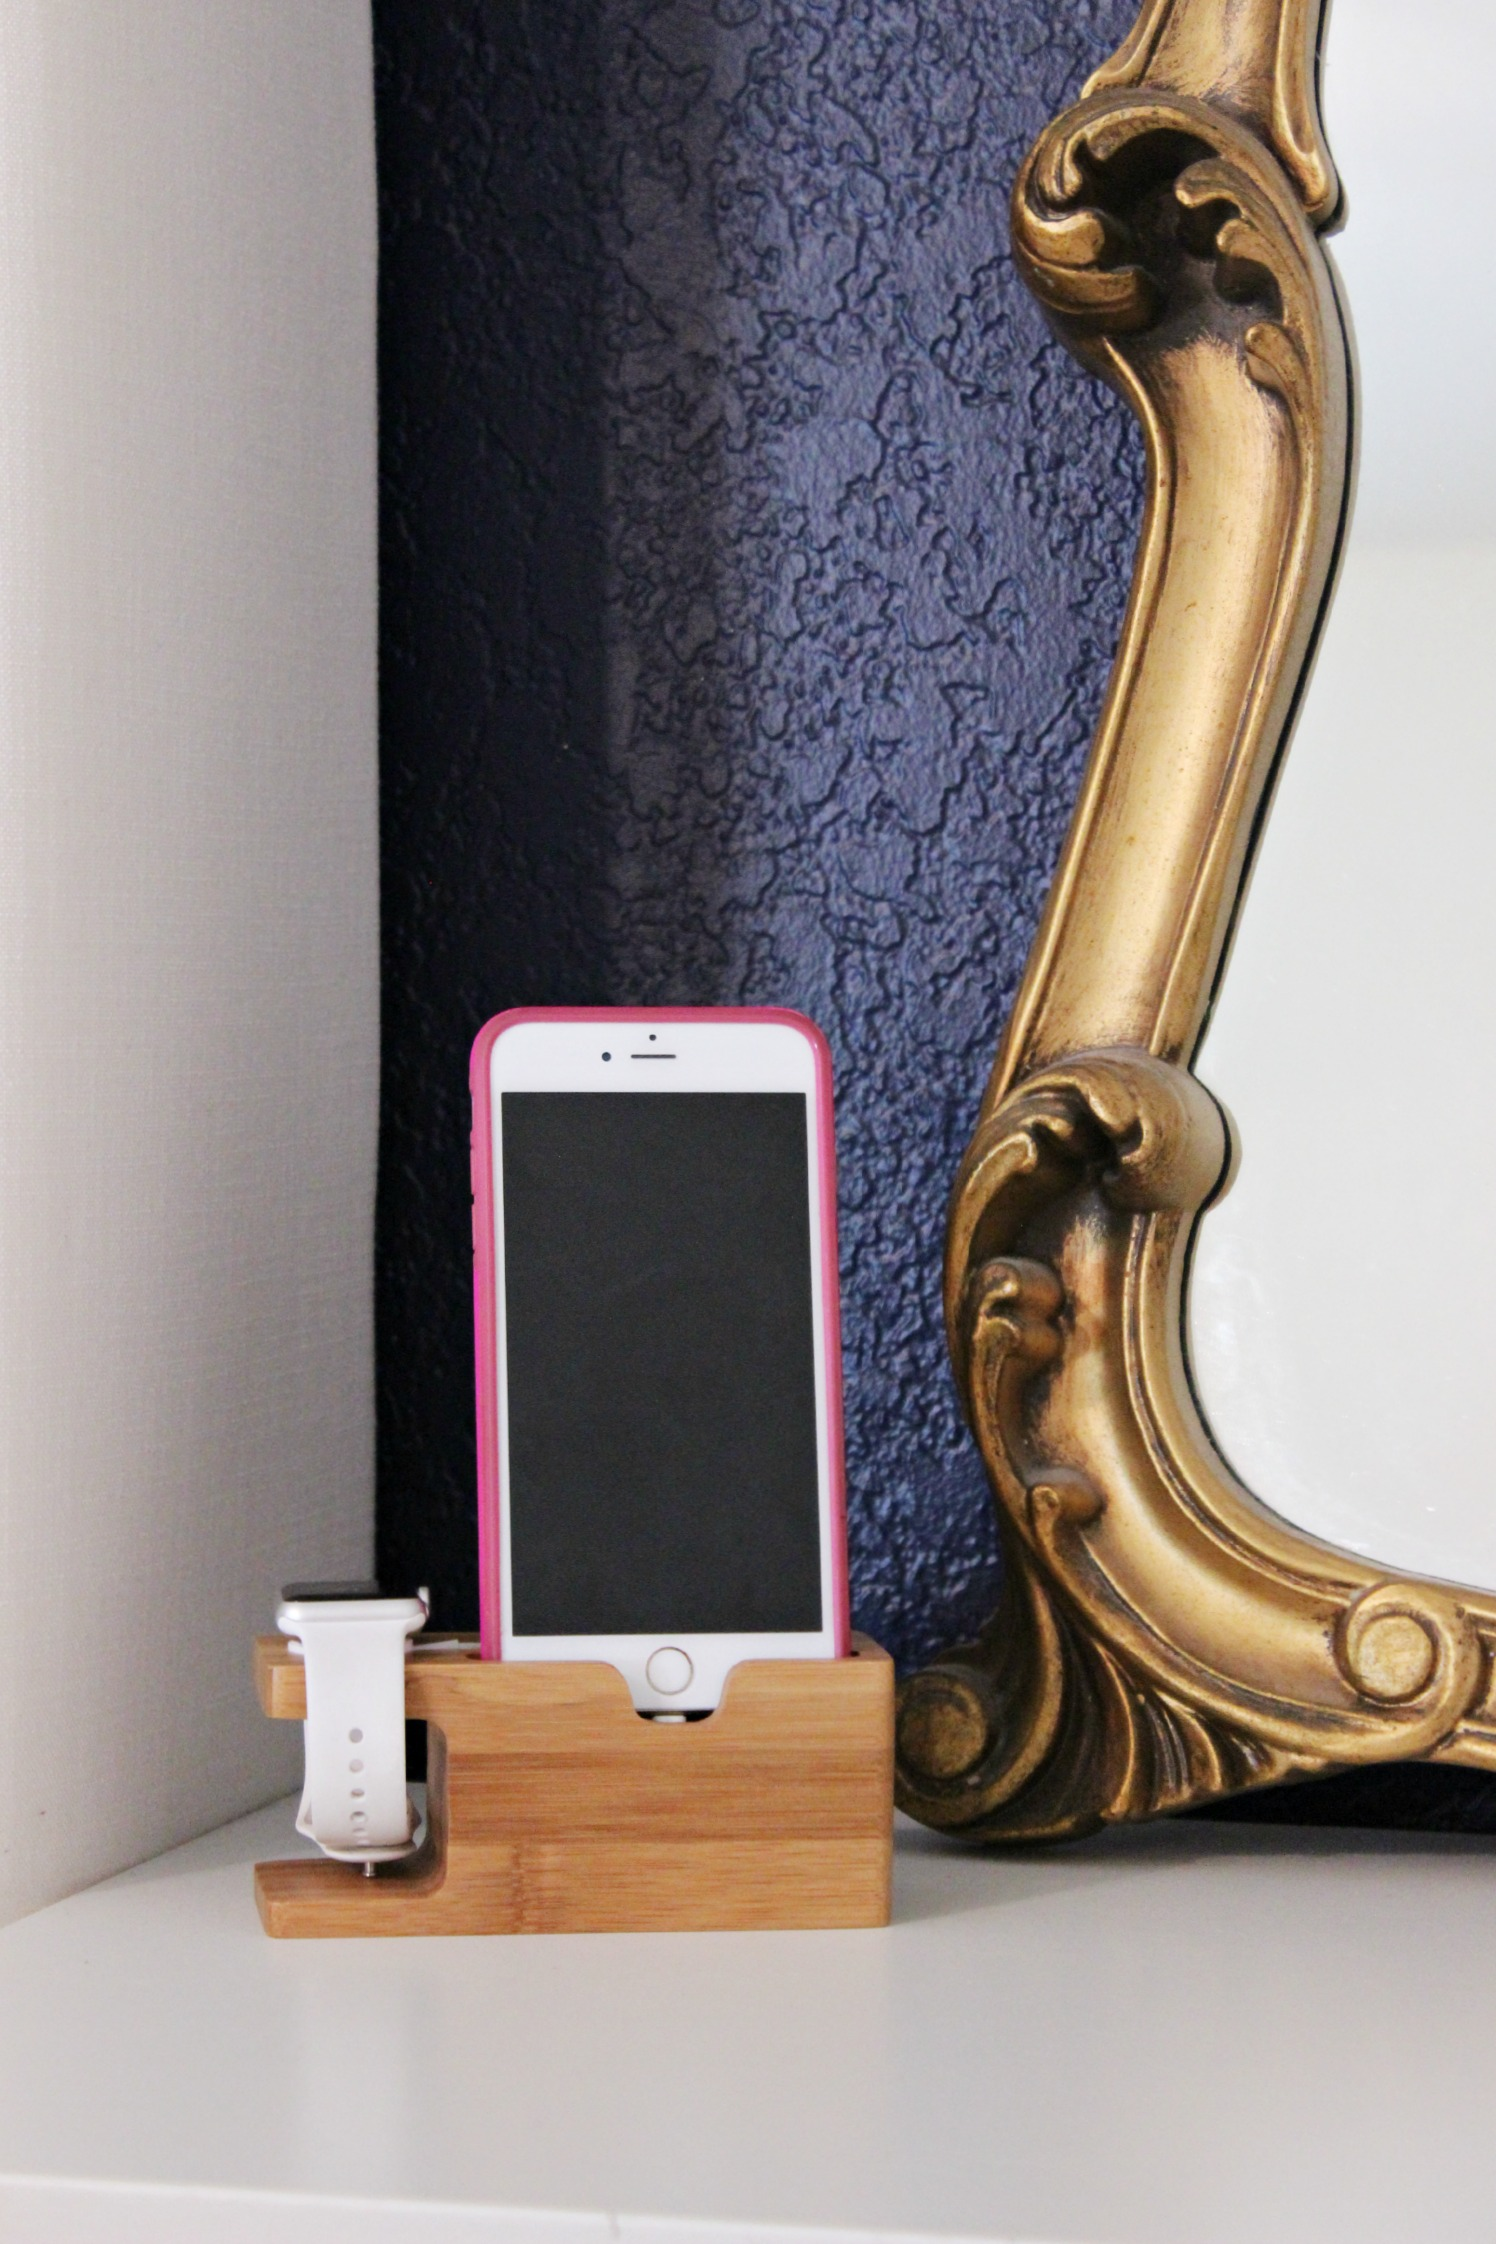 Iphone Dock - www.classyclutter.net